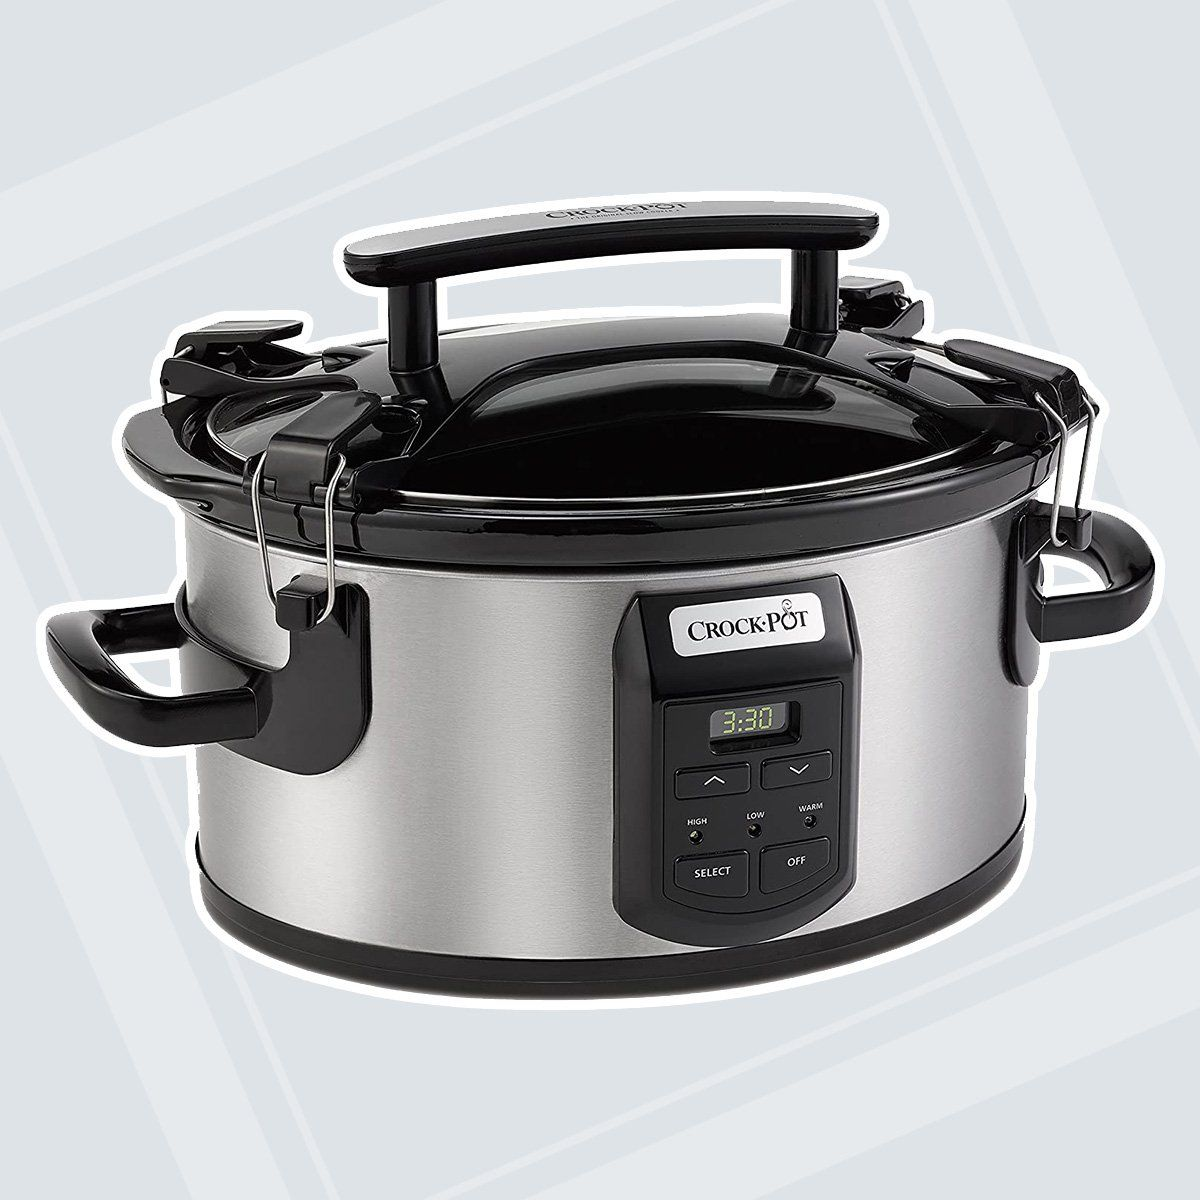 The 10 Best Slow Cookers To Keep On Your Counter Crockpot Crock Best Slow Cooker